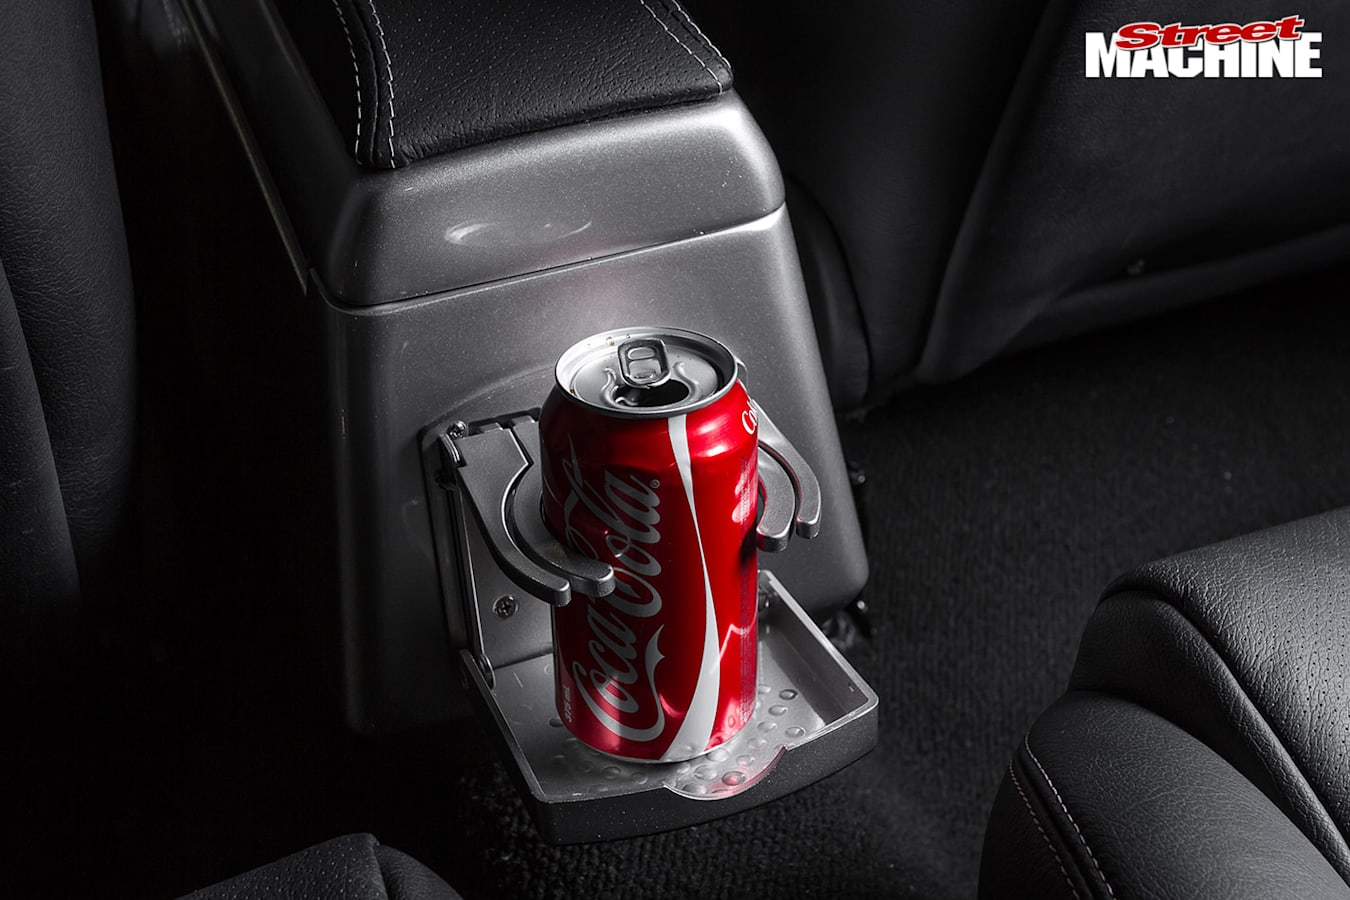 Boss XY cup holder